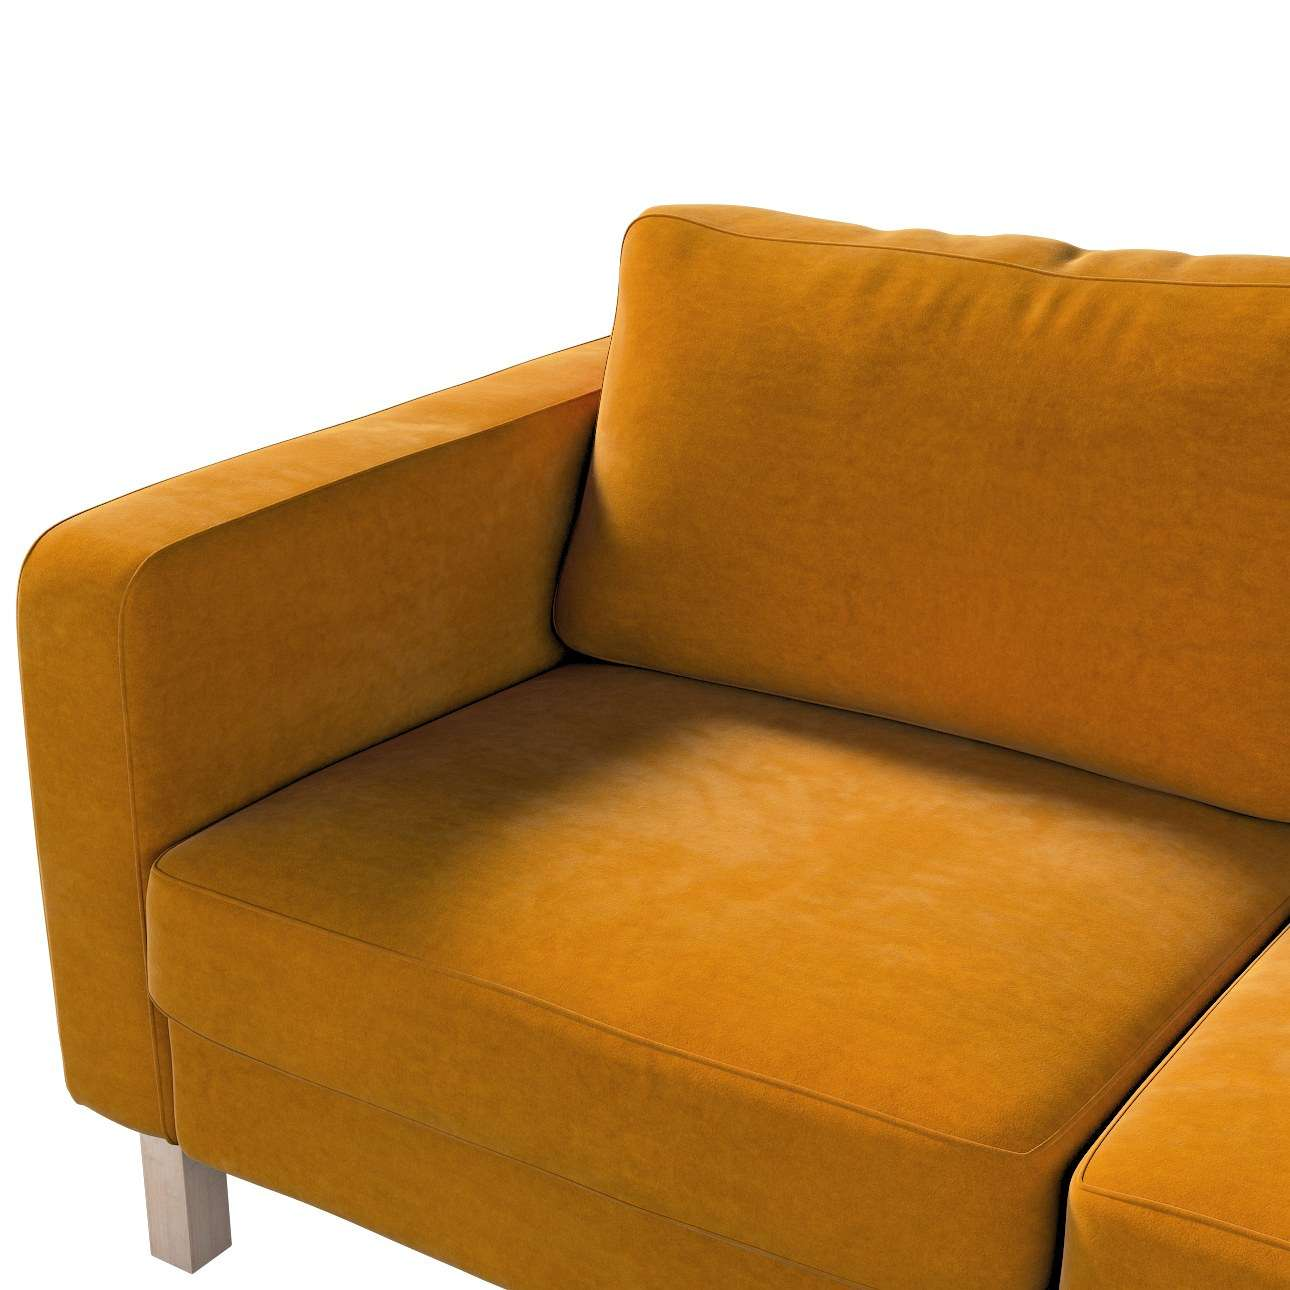 Karlstad 2-seater sofa cover in collection Velvet, fabric: 704-23